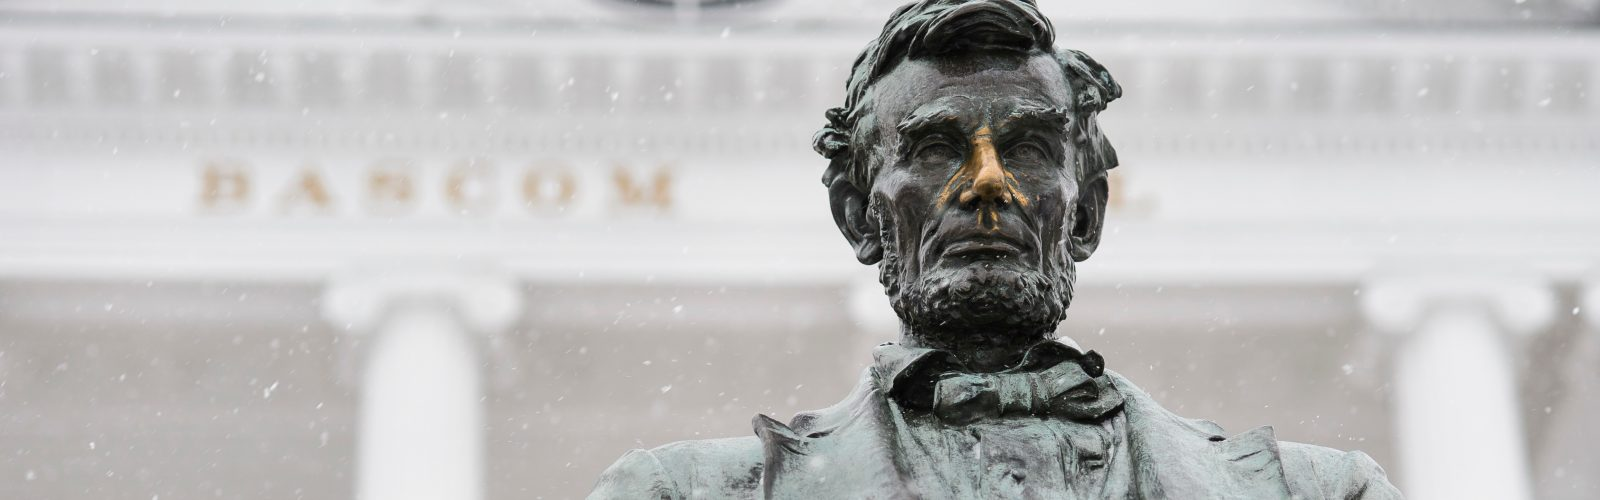 A light snow falls on the Abraham Lincoln statue in front of Bascom Hall at the University of Wisconsin-Madison